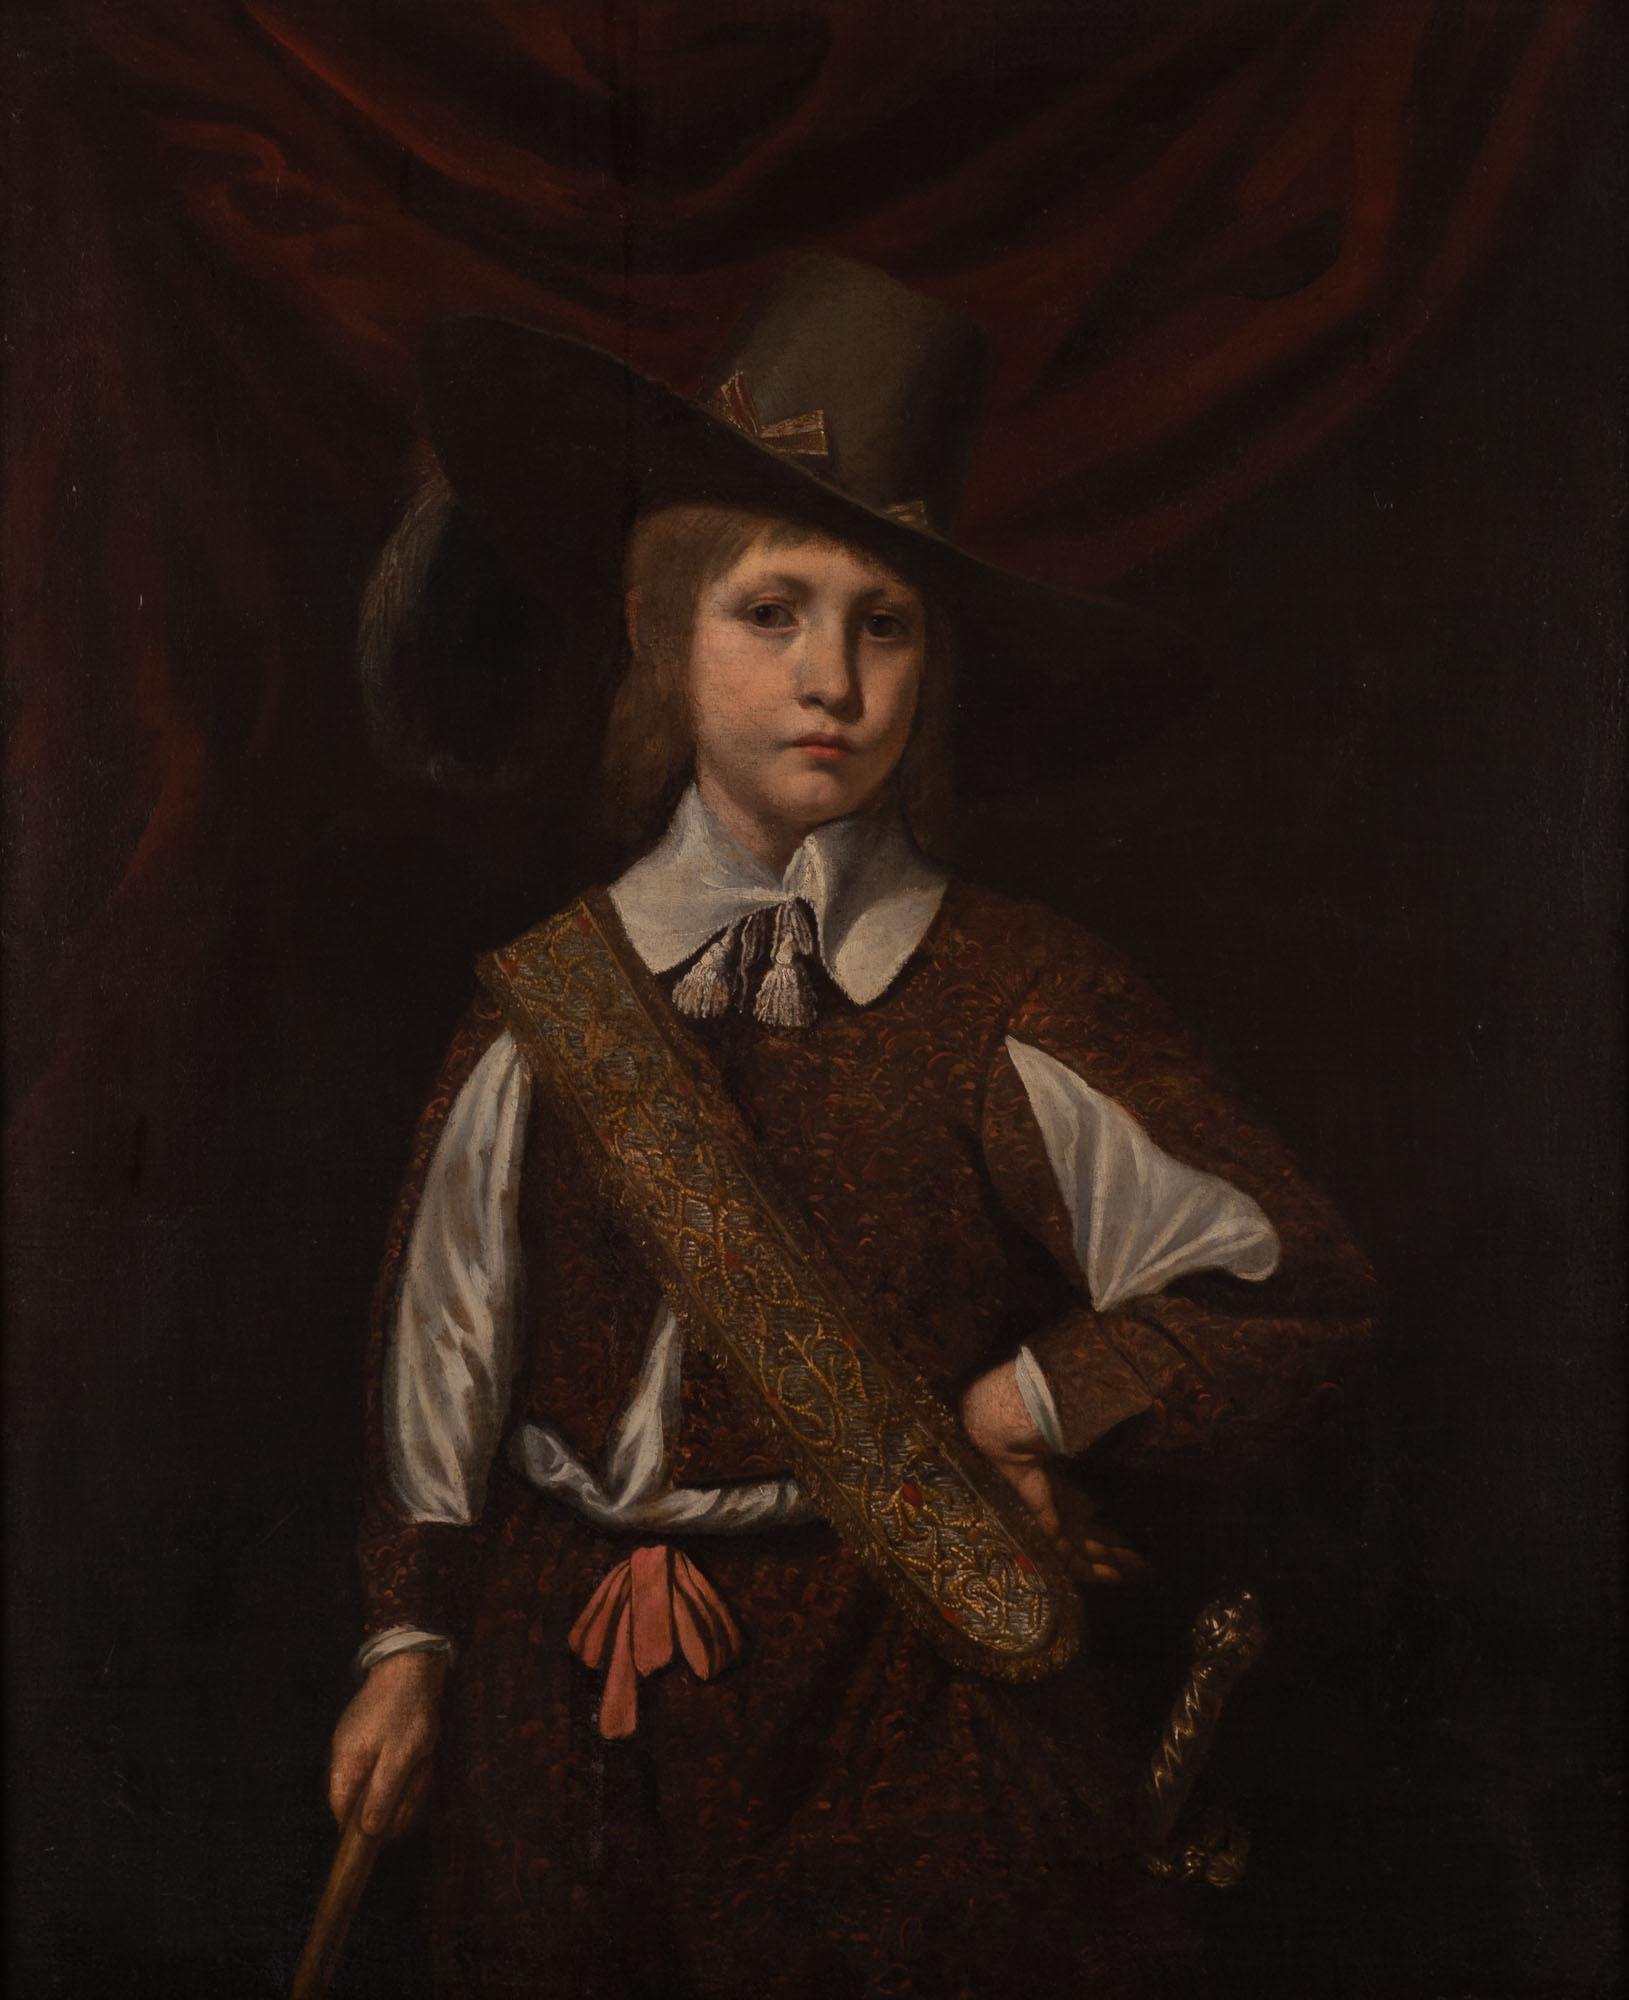 Portrait of a Young Boy, Follower of Ferdinand Bol (1616-1680).